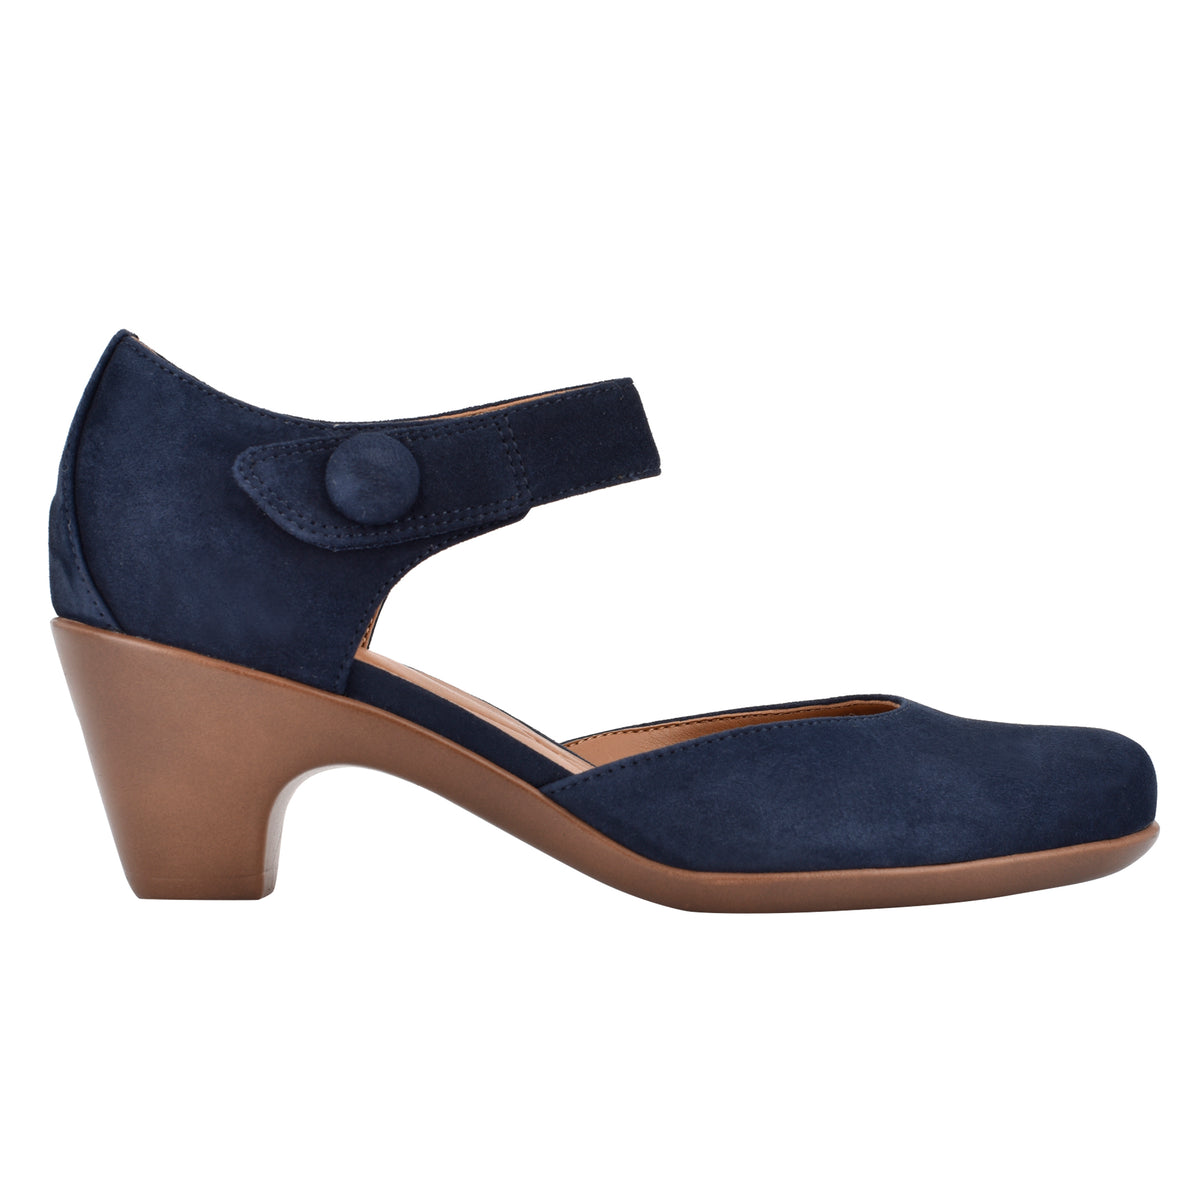 Clarice Mary Jane Heels